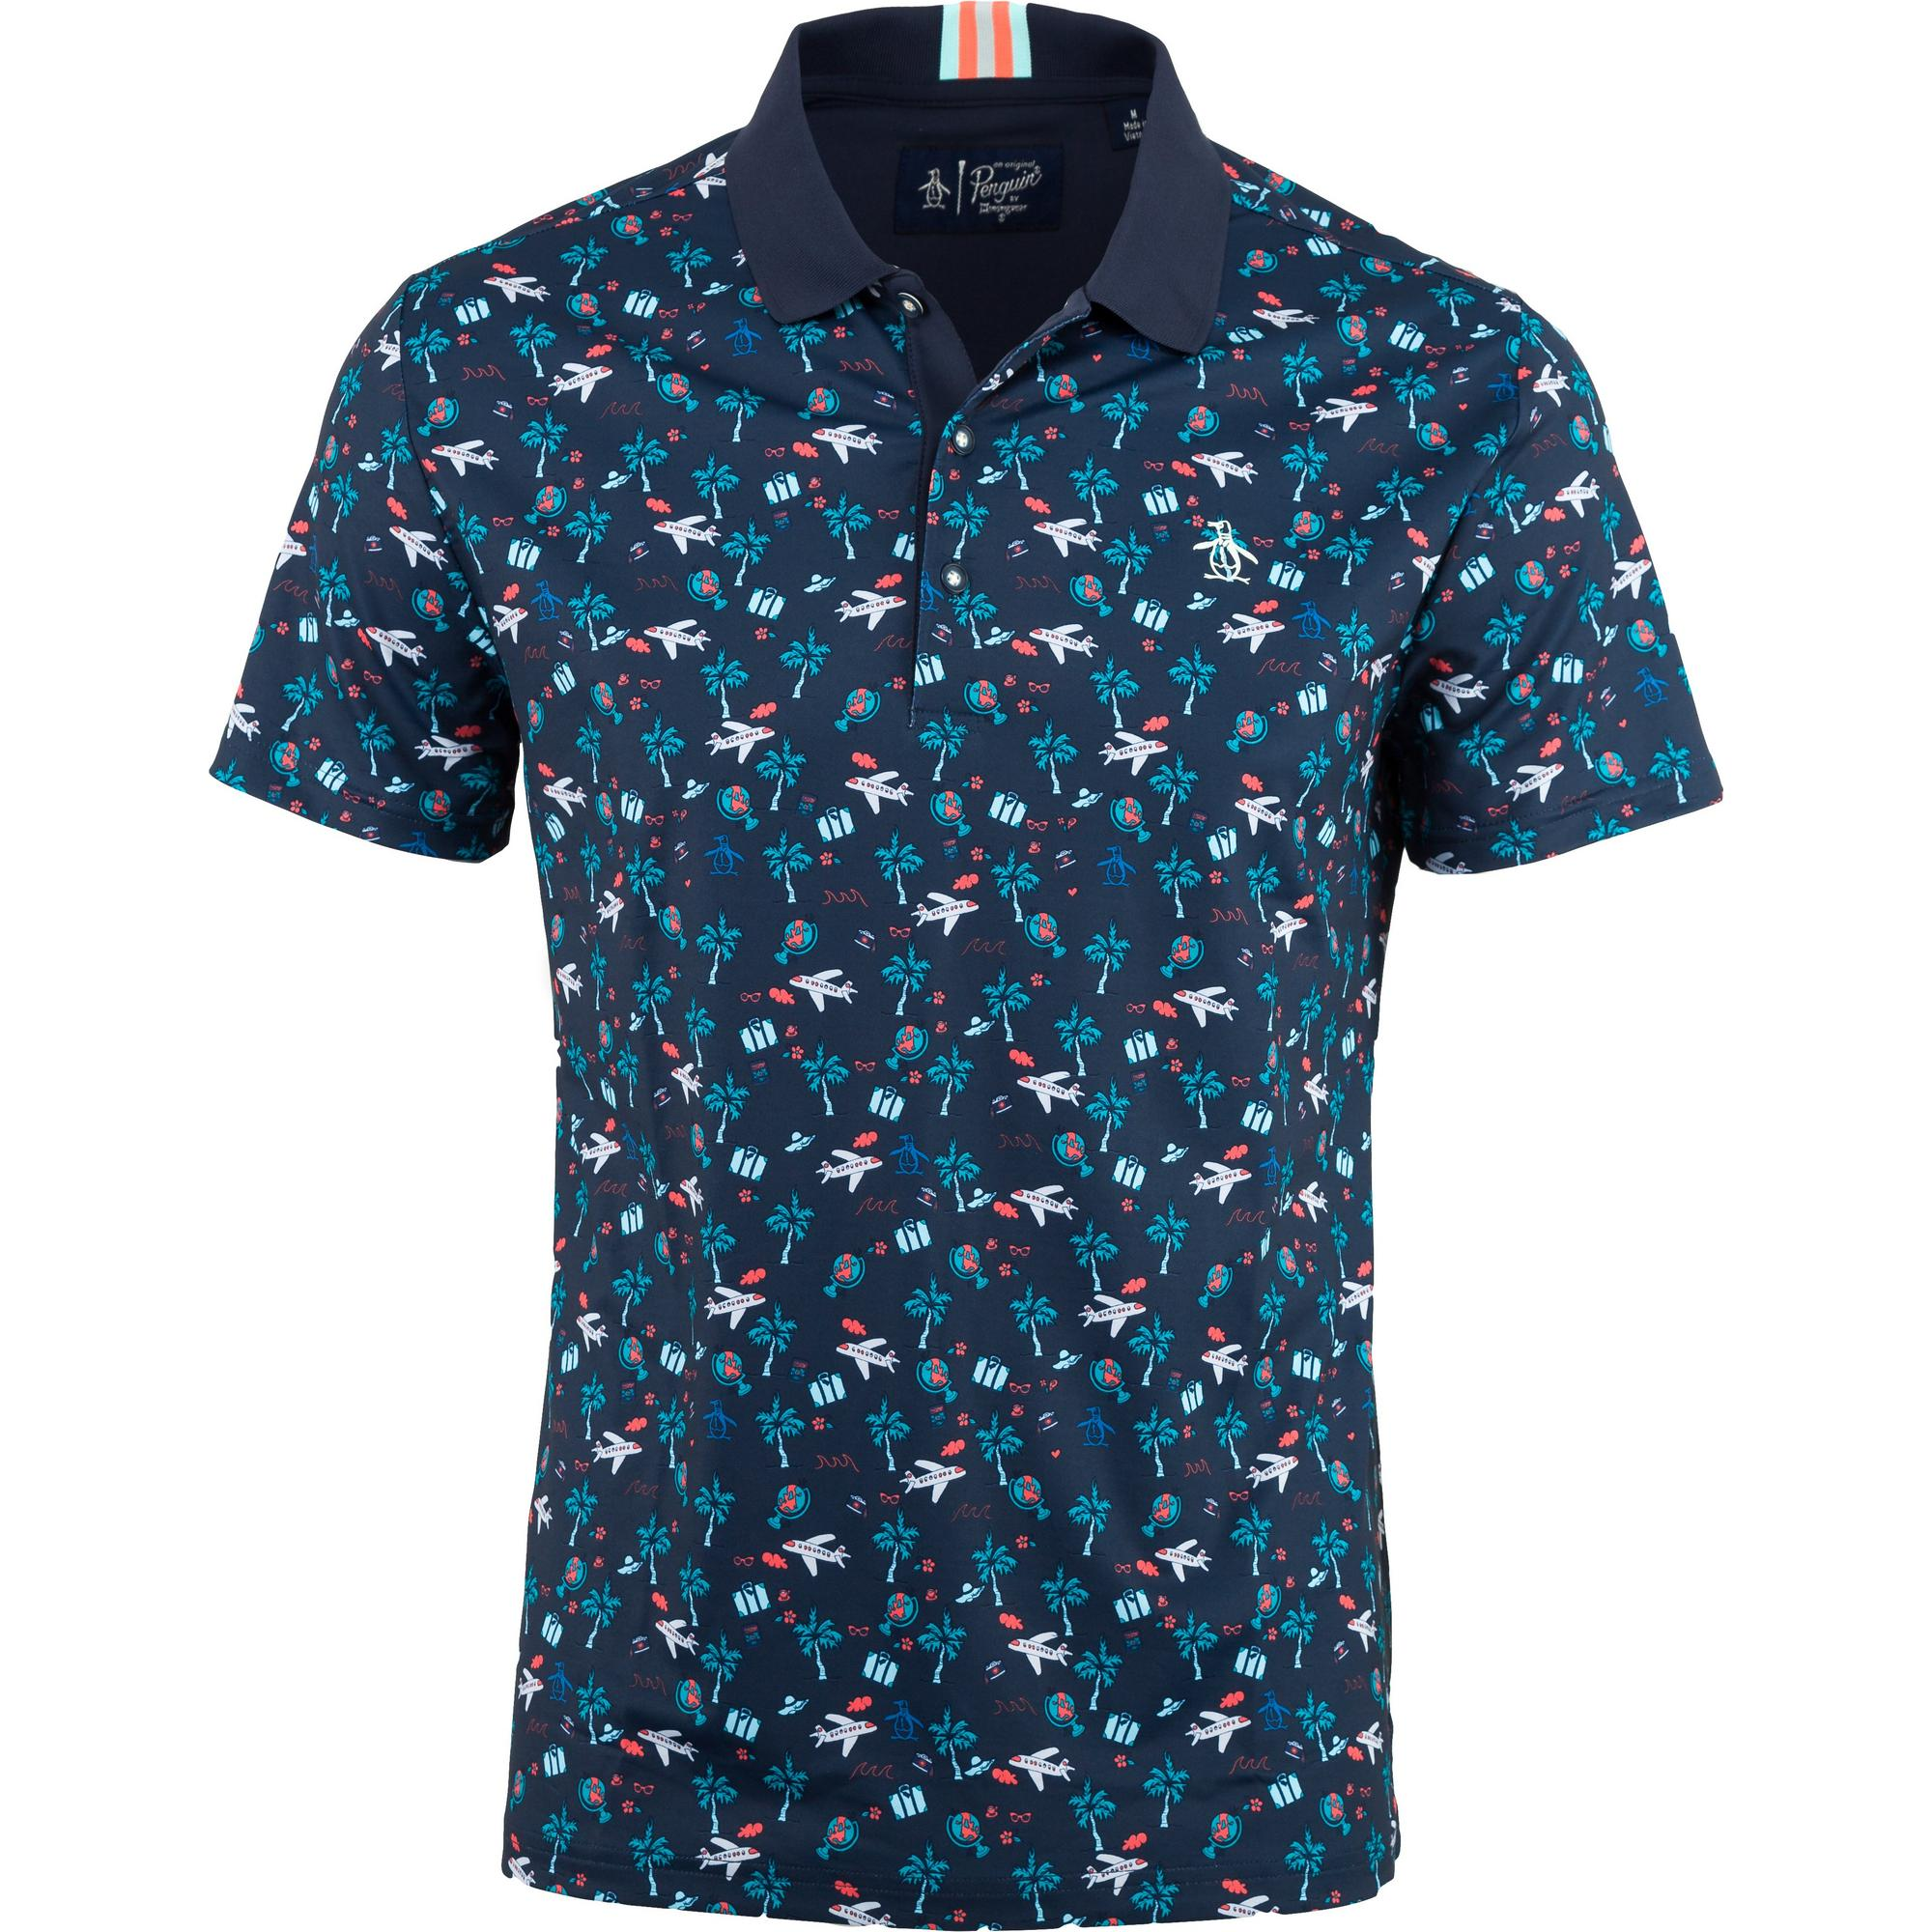 Men's Allover Conversational Print Stretch Short Sleeve Shirt